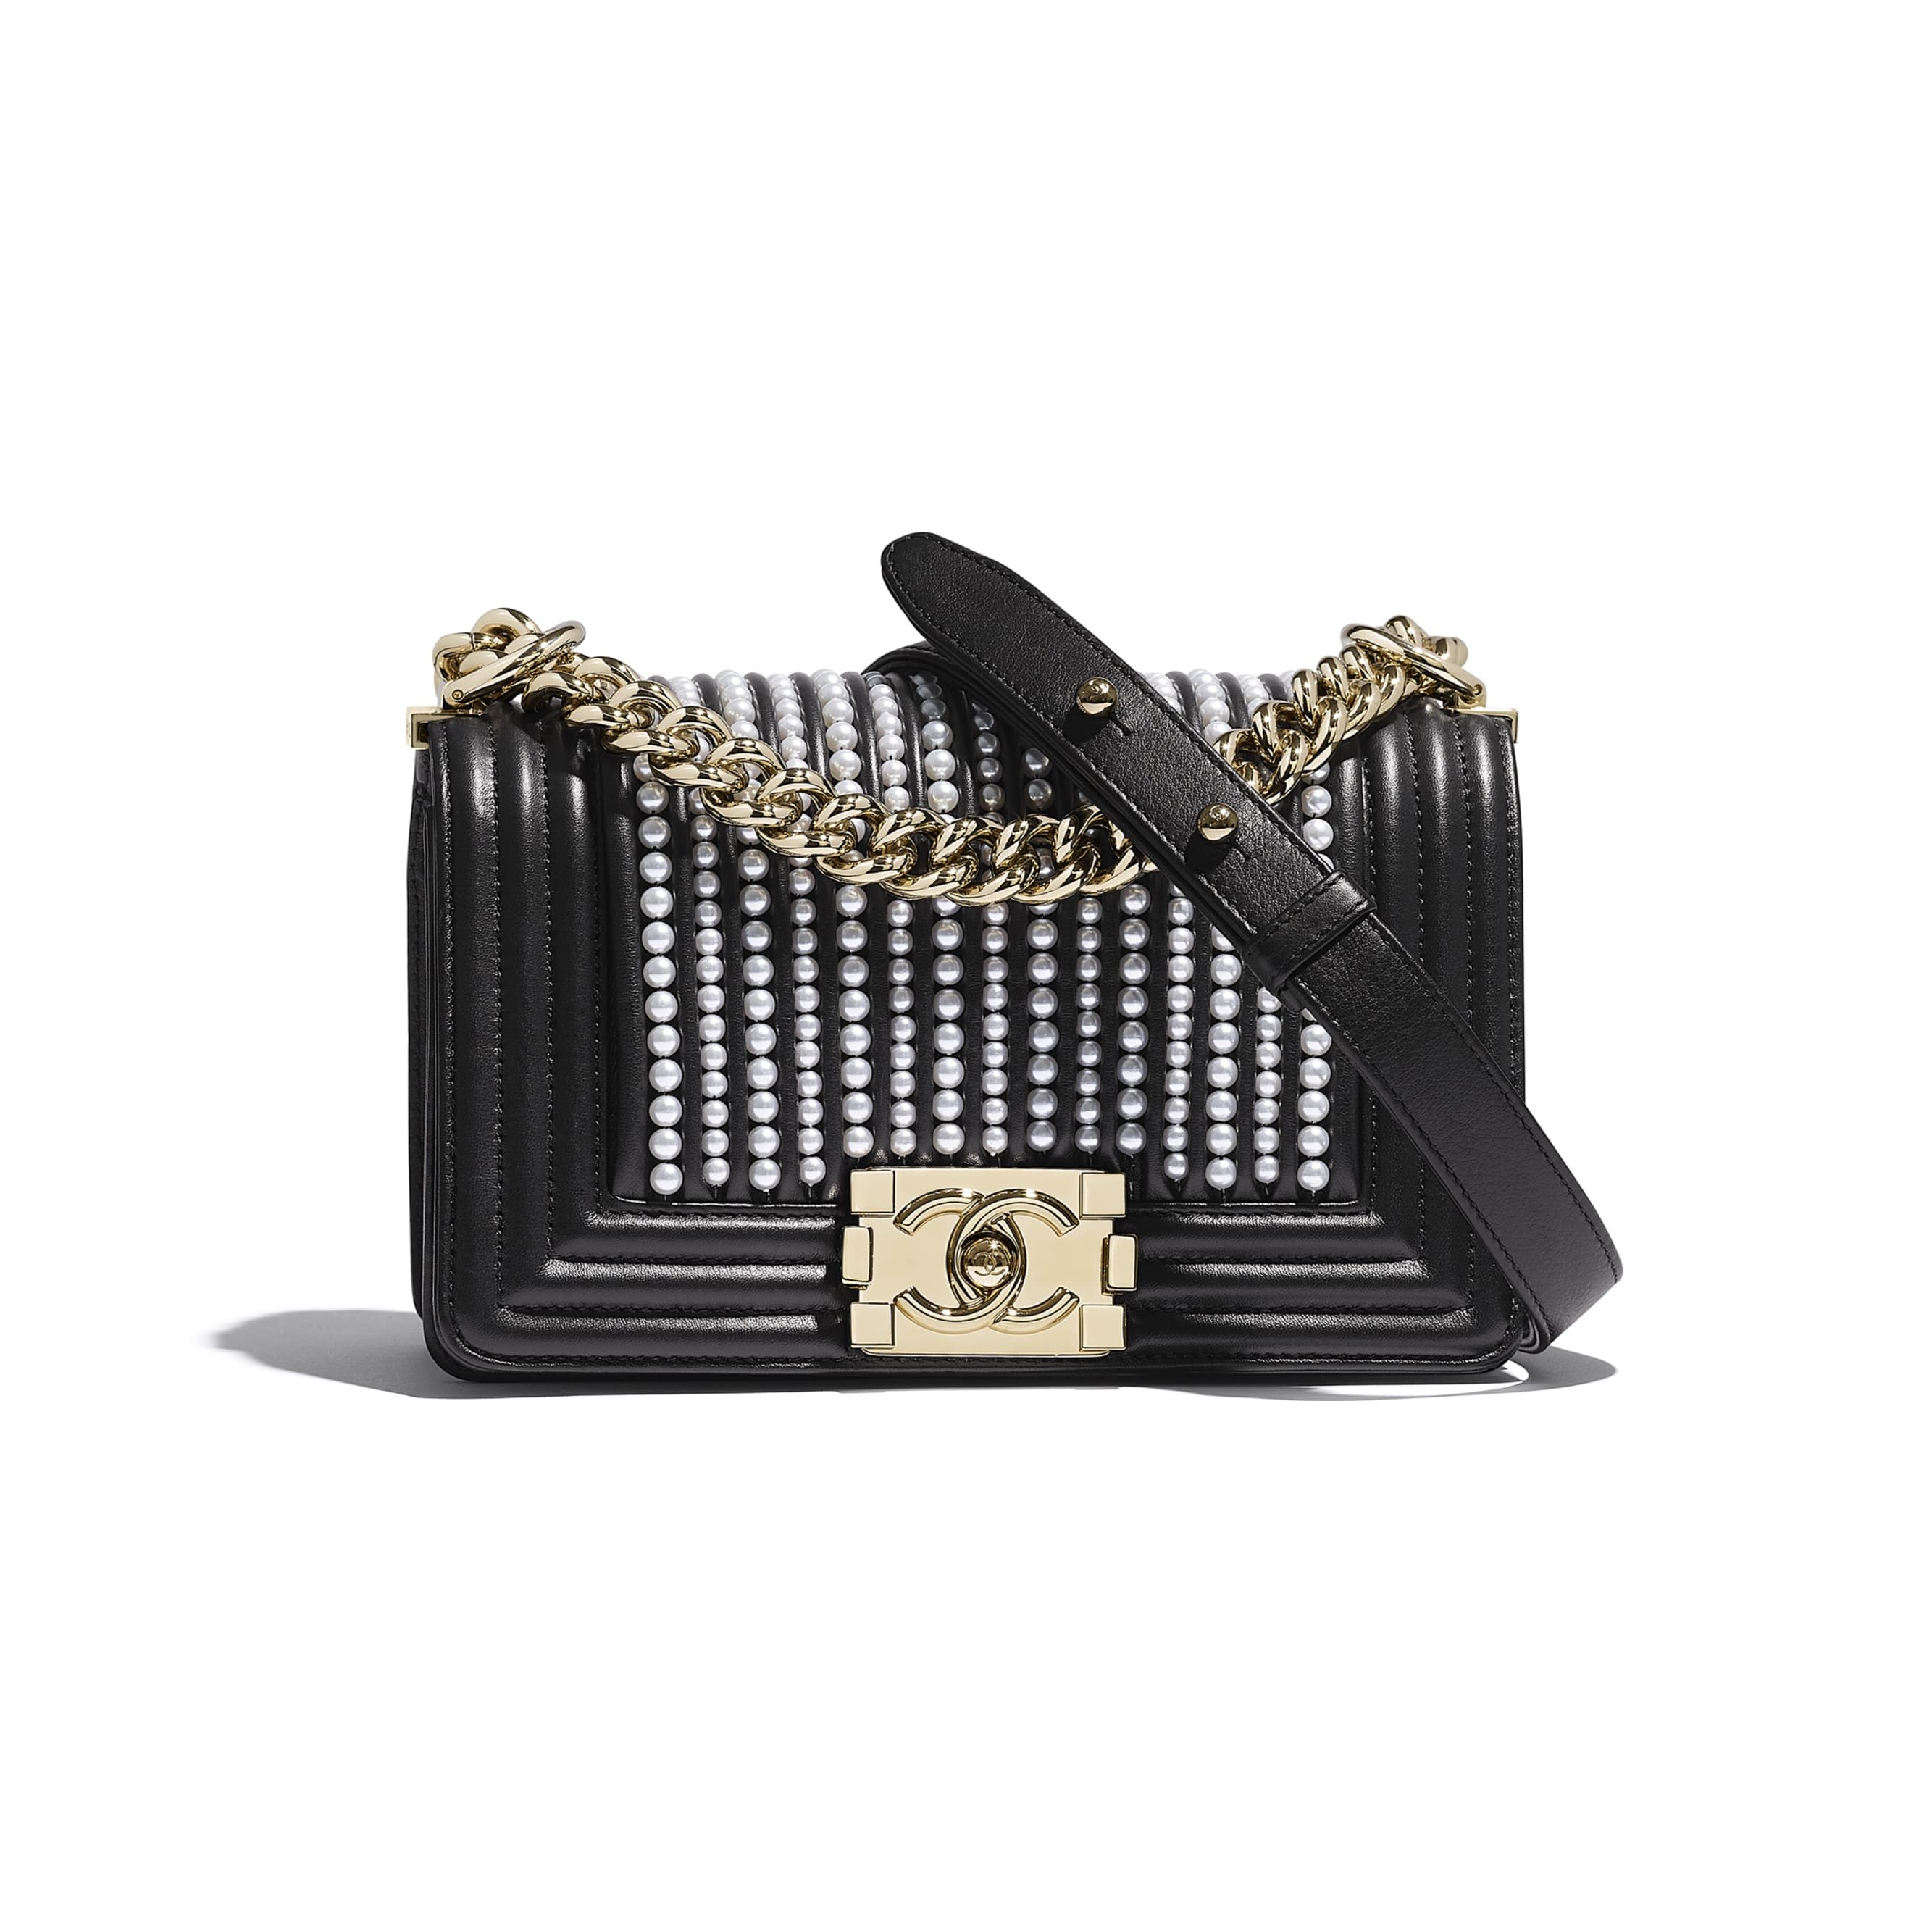 Small BOY CHANEL Handbag - Black - Calfskin, Imitation Pearls & Gold-Tone Metal - Default view - see standard sized version